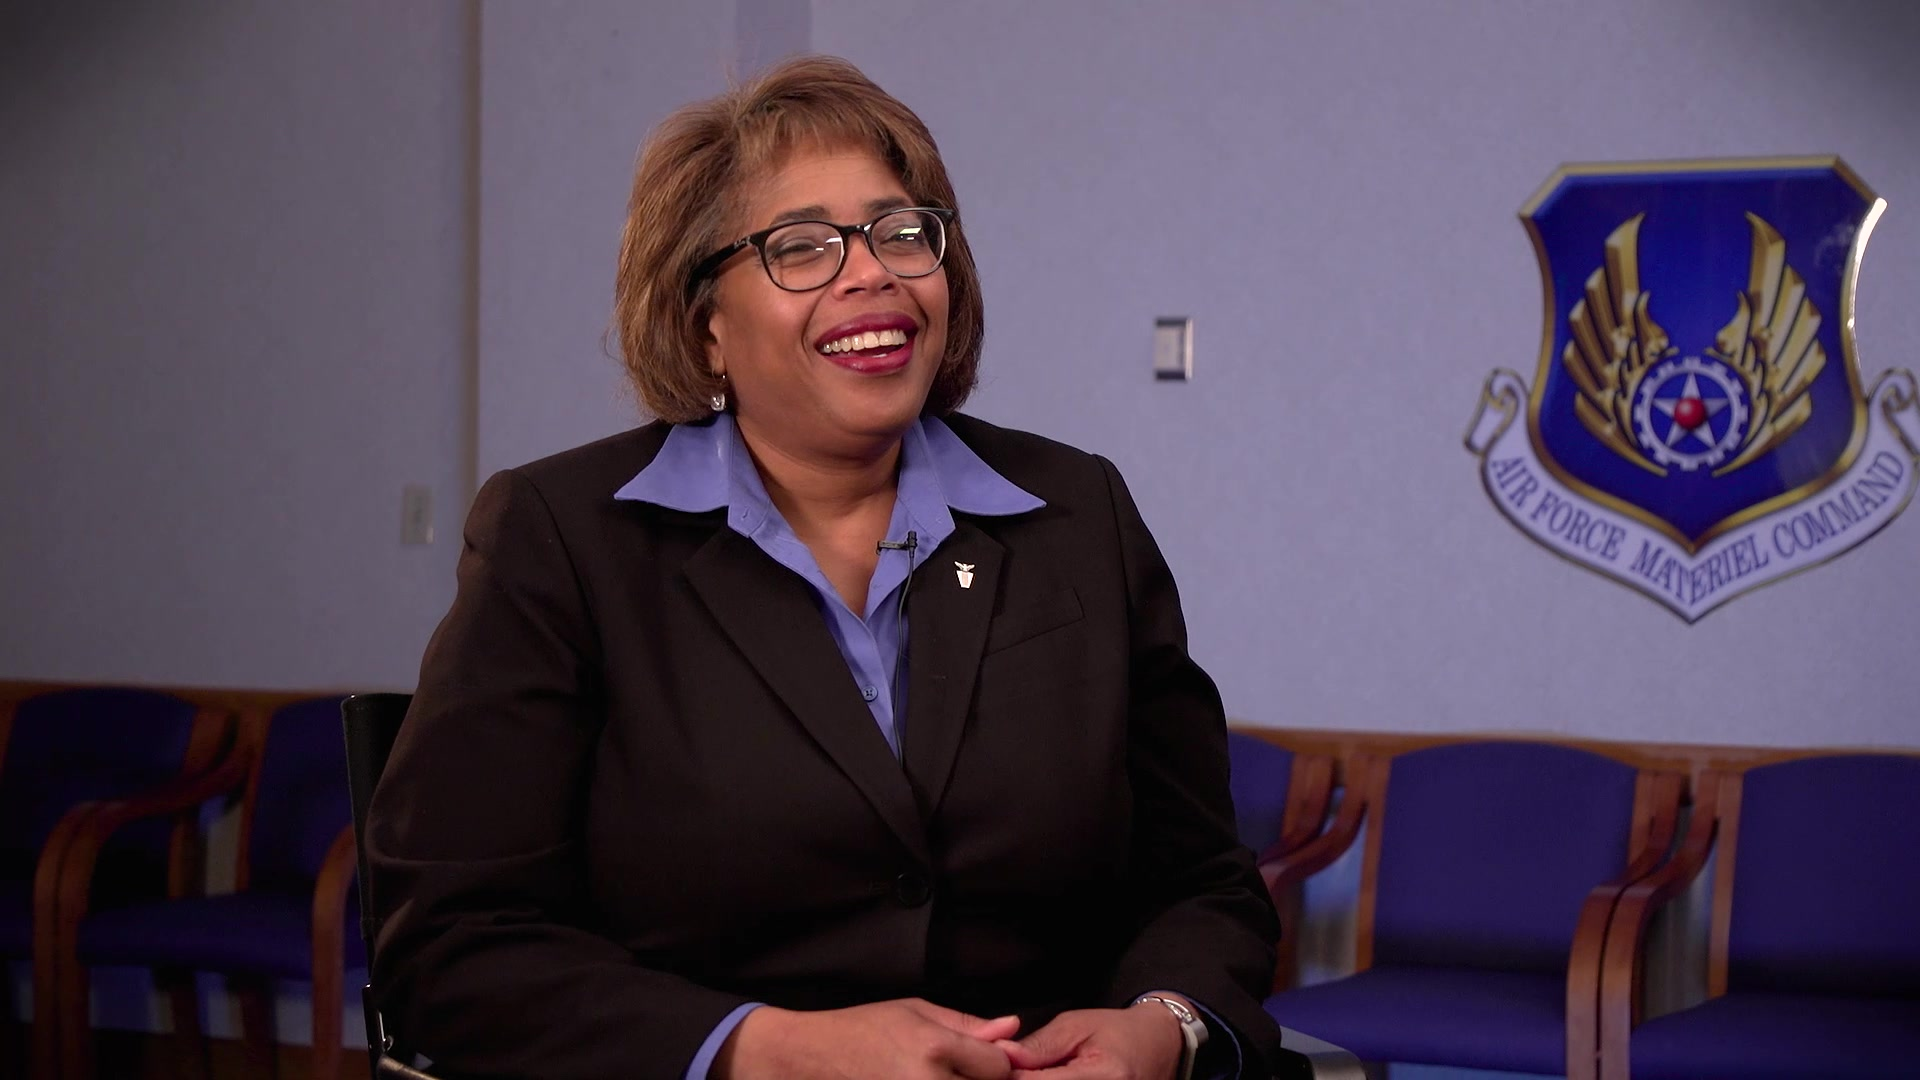 Ms. Teresa Bickett, Deputy Director of Financial Management, Air Force Materiel Command, Wright-Patterson Air Force Base, Ohio, shares her perspectives on the importance of mentorship, April 23, 2019. AFMC shares the impact of mentoring through first-person experiences from its leaders. (U.S. Air Force Video by Chris Decker)